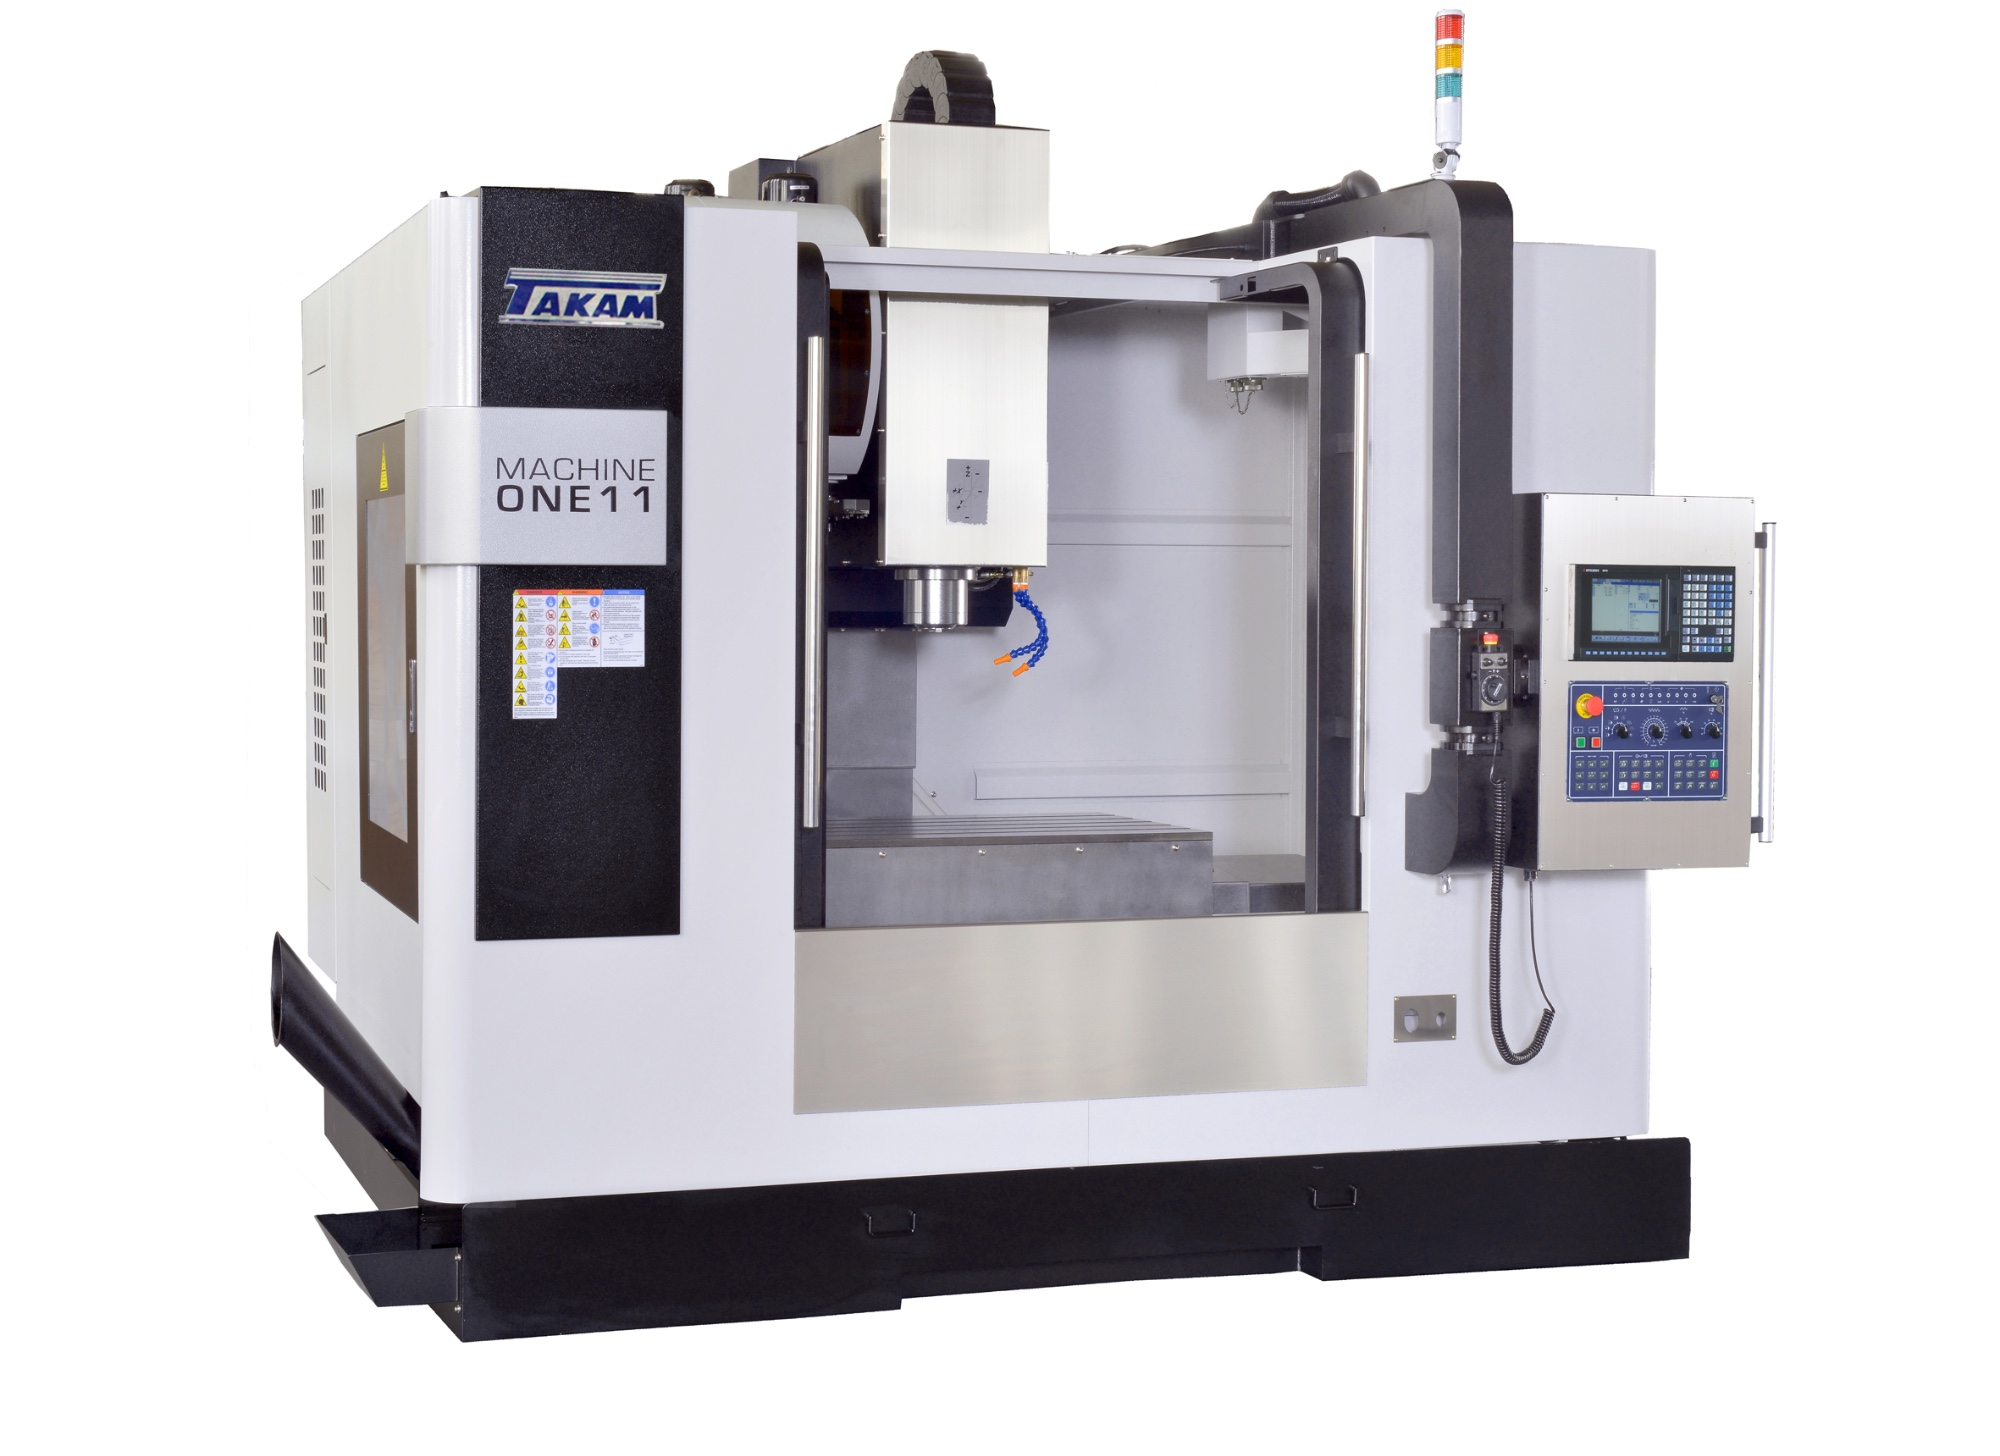 M-one 8 Premium 3 Axis Vertical Machine Center Manufacturers, M-one 8 Premium 3 Axis Vertical Machine Center Factory, Supply M-one 8 Premium 3 Axis Vertical Machine Center